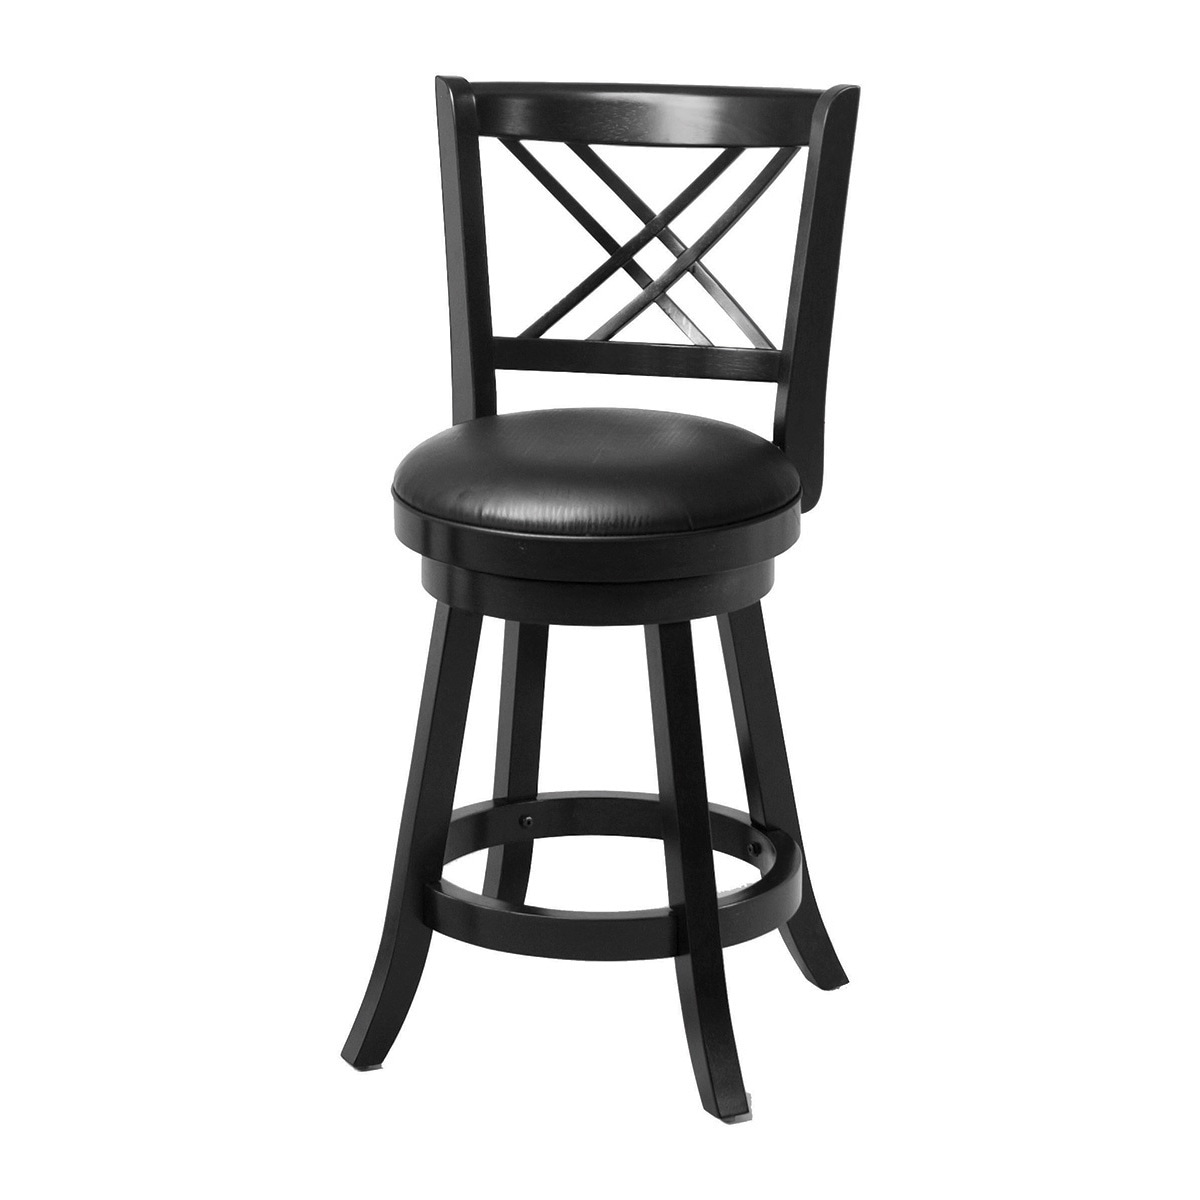 Shop Coaster Company Black Wood/Veneer Bar Stool